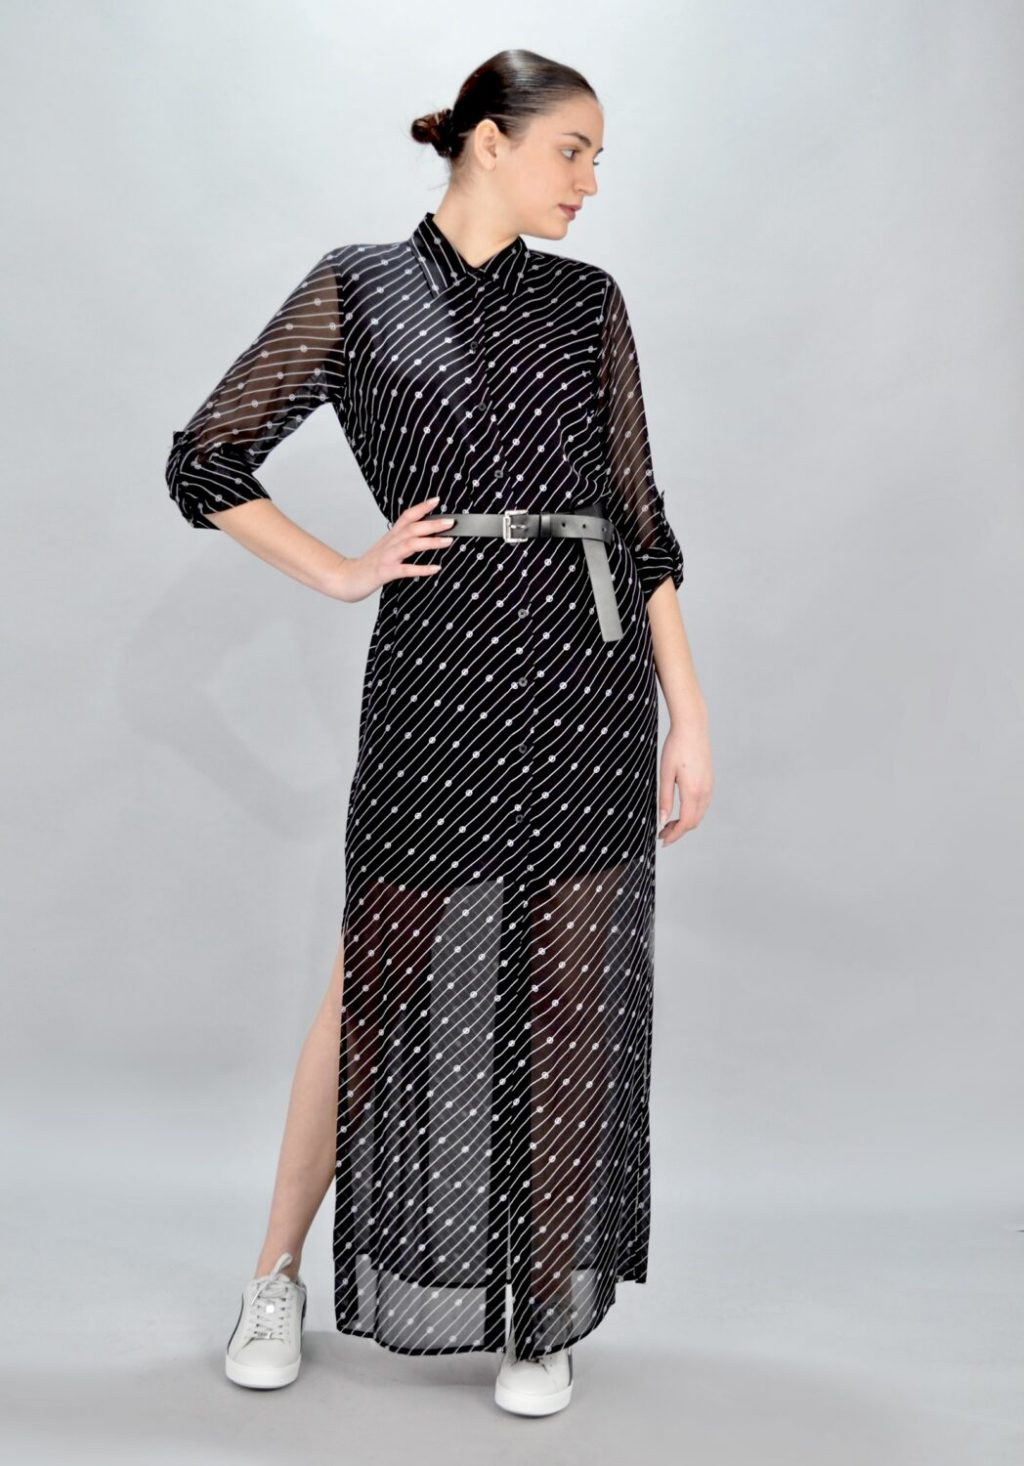 Collection Spring - Summer 2021 MICHAEL KORS BIAS DRESS